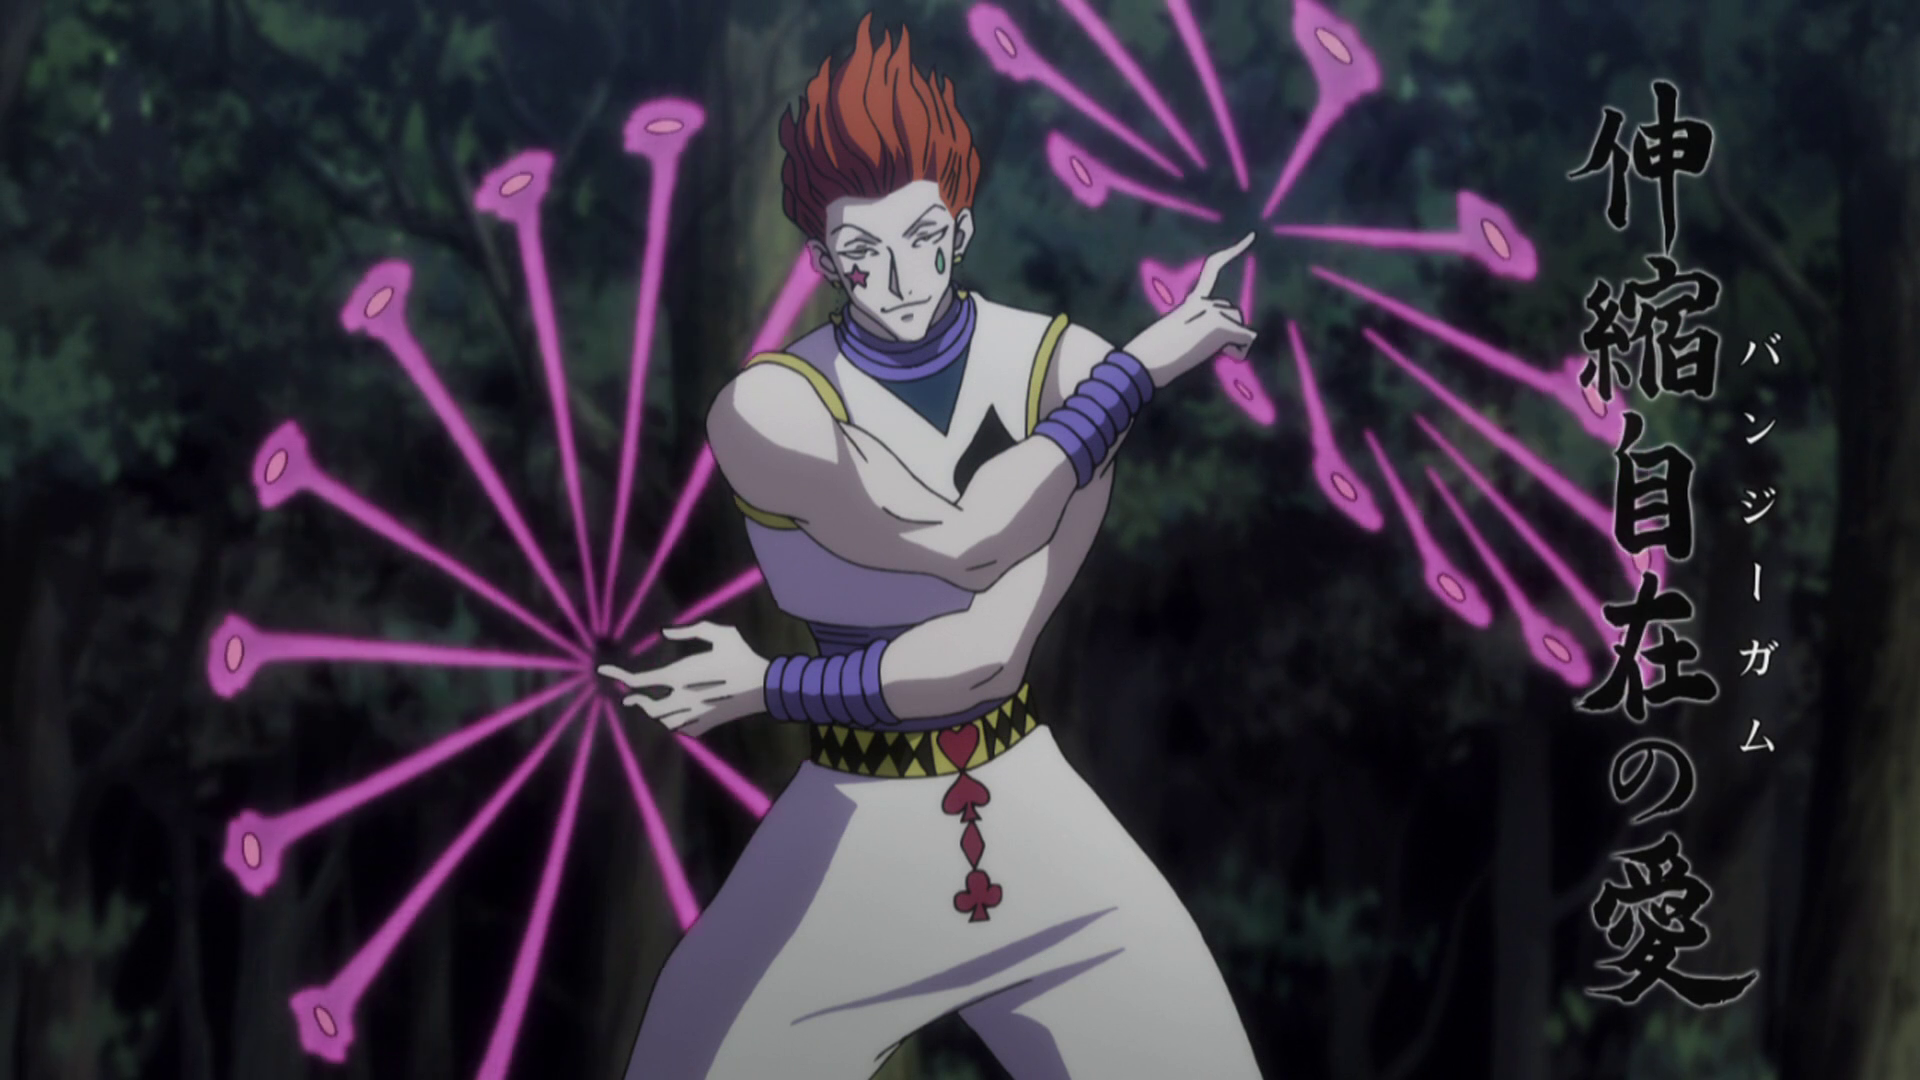 Hunter X Hunter Hisoka Wallpaper Hisoka Hunter X Hunter